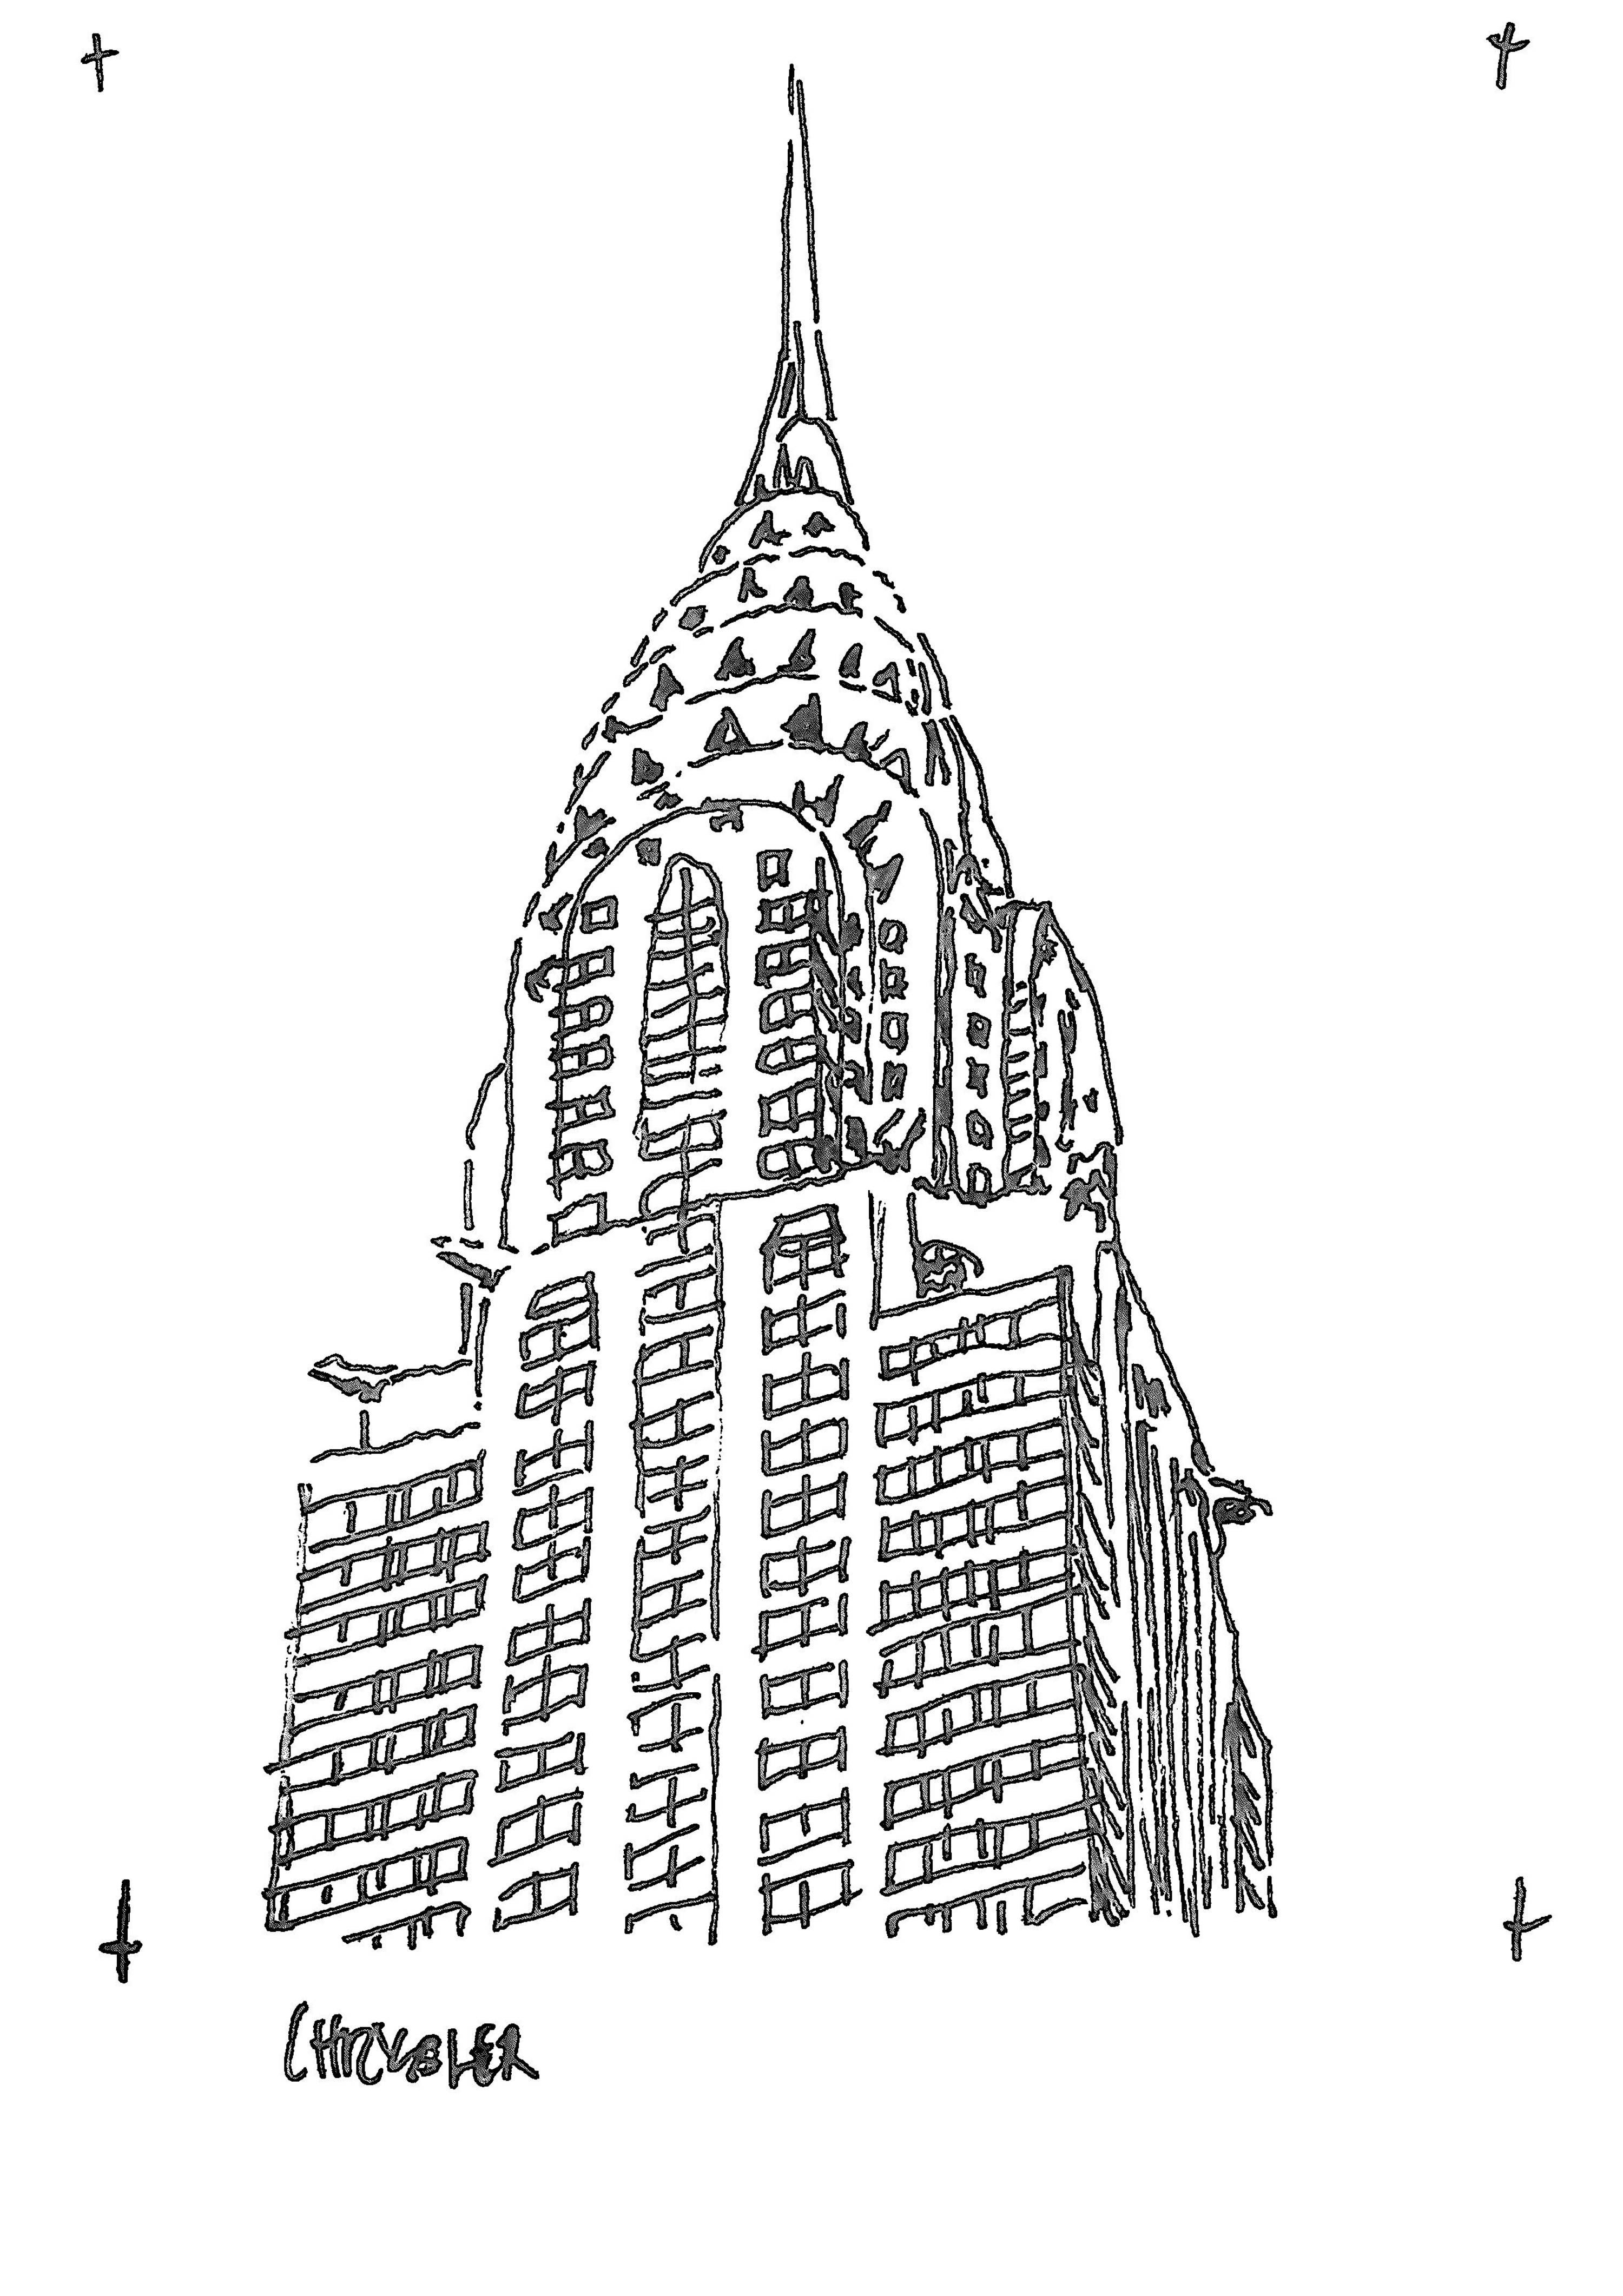 Chrysler And The Empire State Building sketched by Heidi Mergl Architect